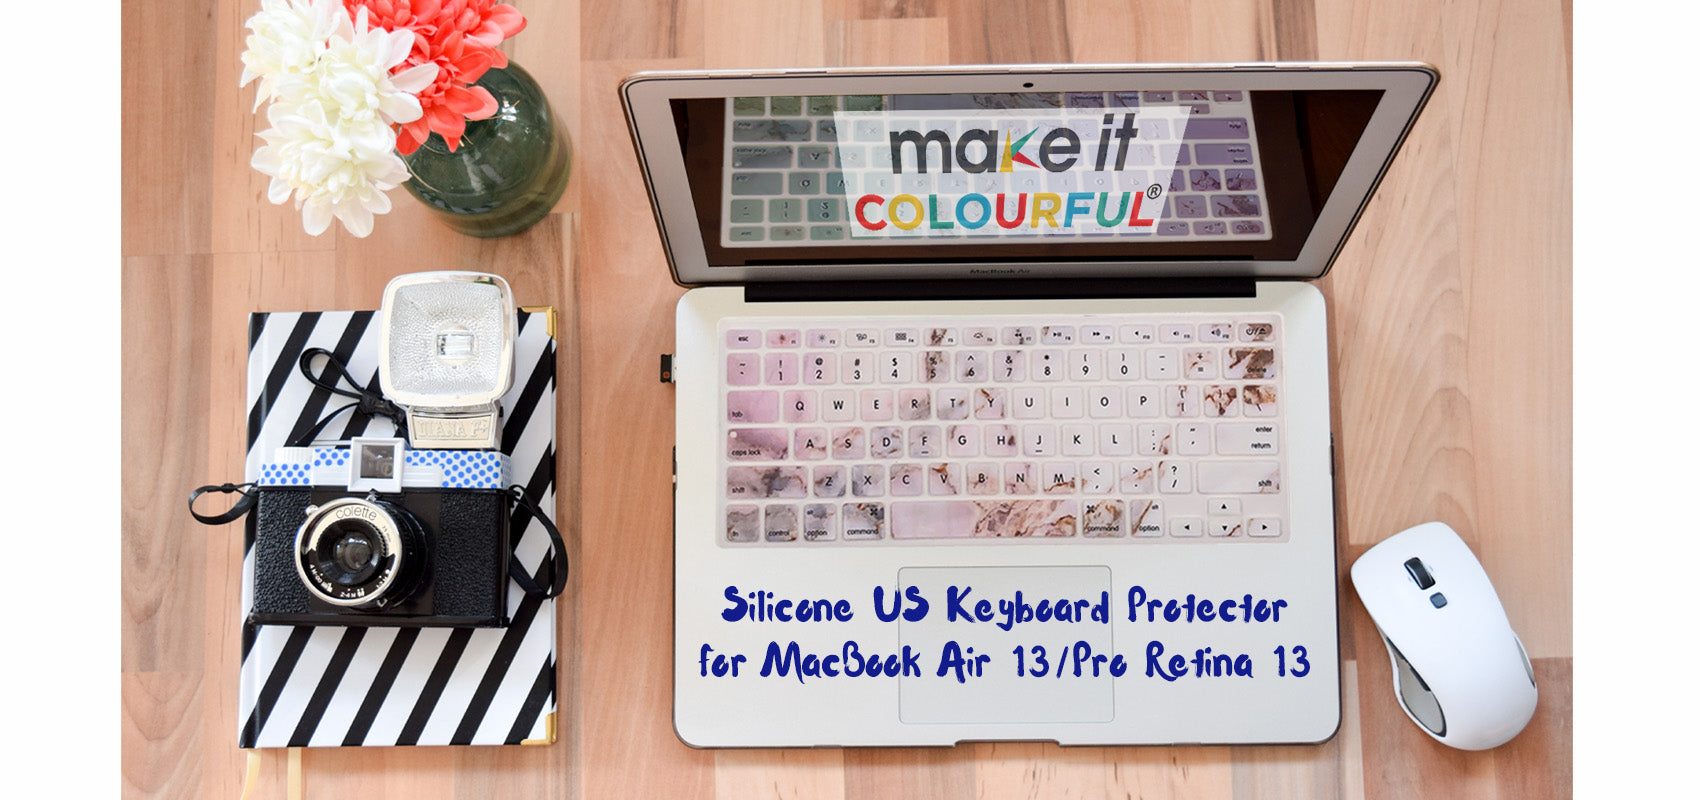 Macbook Case Collection Digital Accessories Make It Colourful Keyboard Protector Silicone 14 Inch Which One